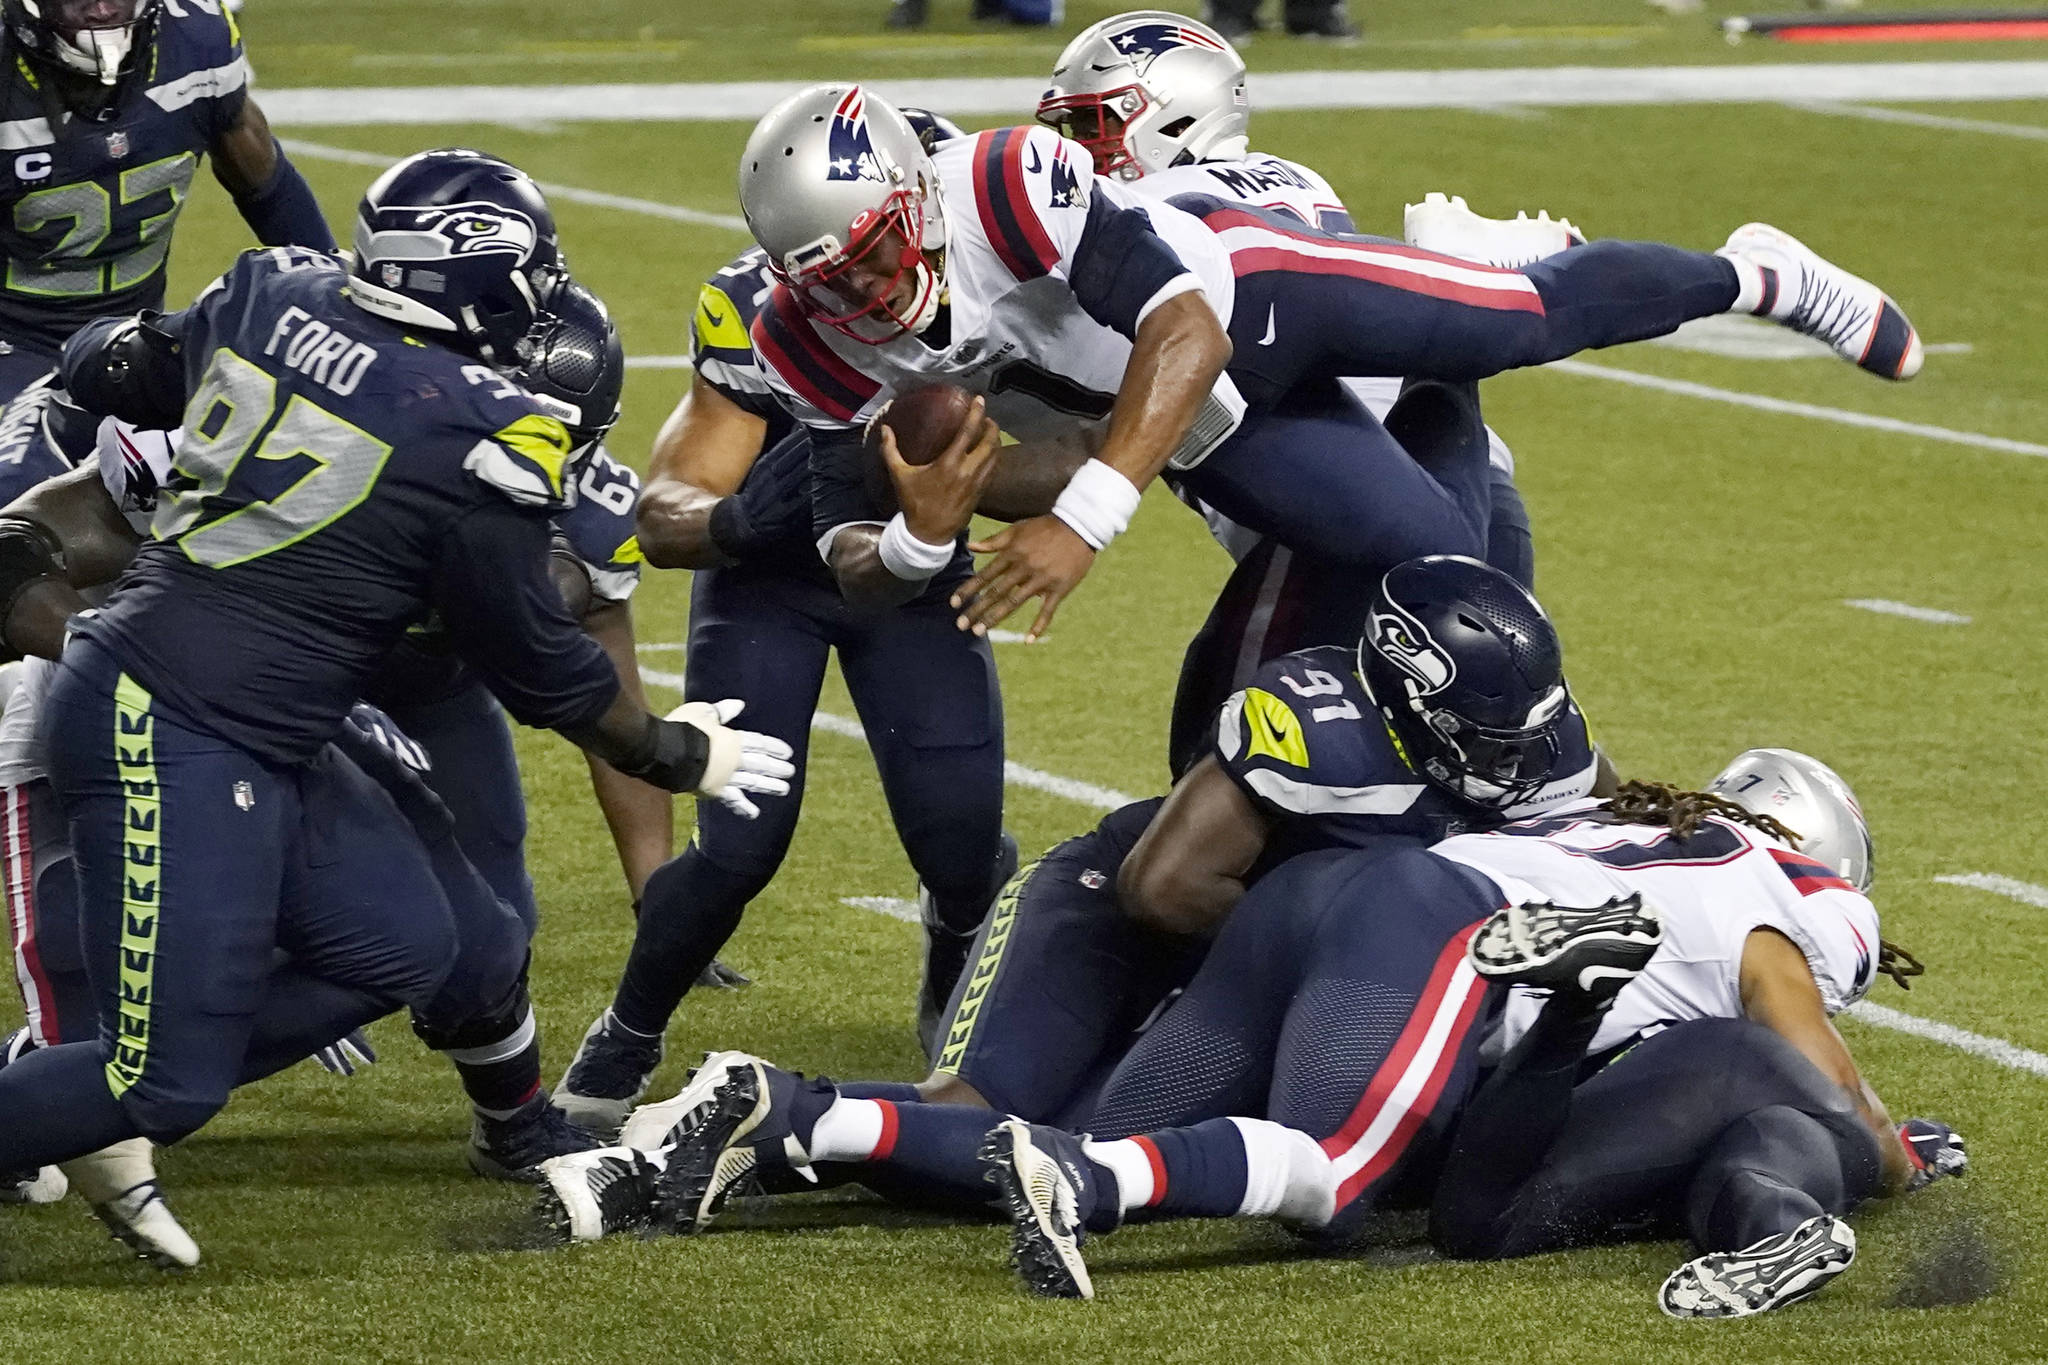 New England Patriots quarterback Cam Newton dives with the ball, but is stopped near the goal line as the clock expires in the fourth quarter of an NFL football game against the Seattle Seahawks last Sunday at CenturyLink Field. The Seahawks won 35-30. (AP Photo/Elaine Thompson)